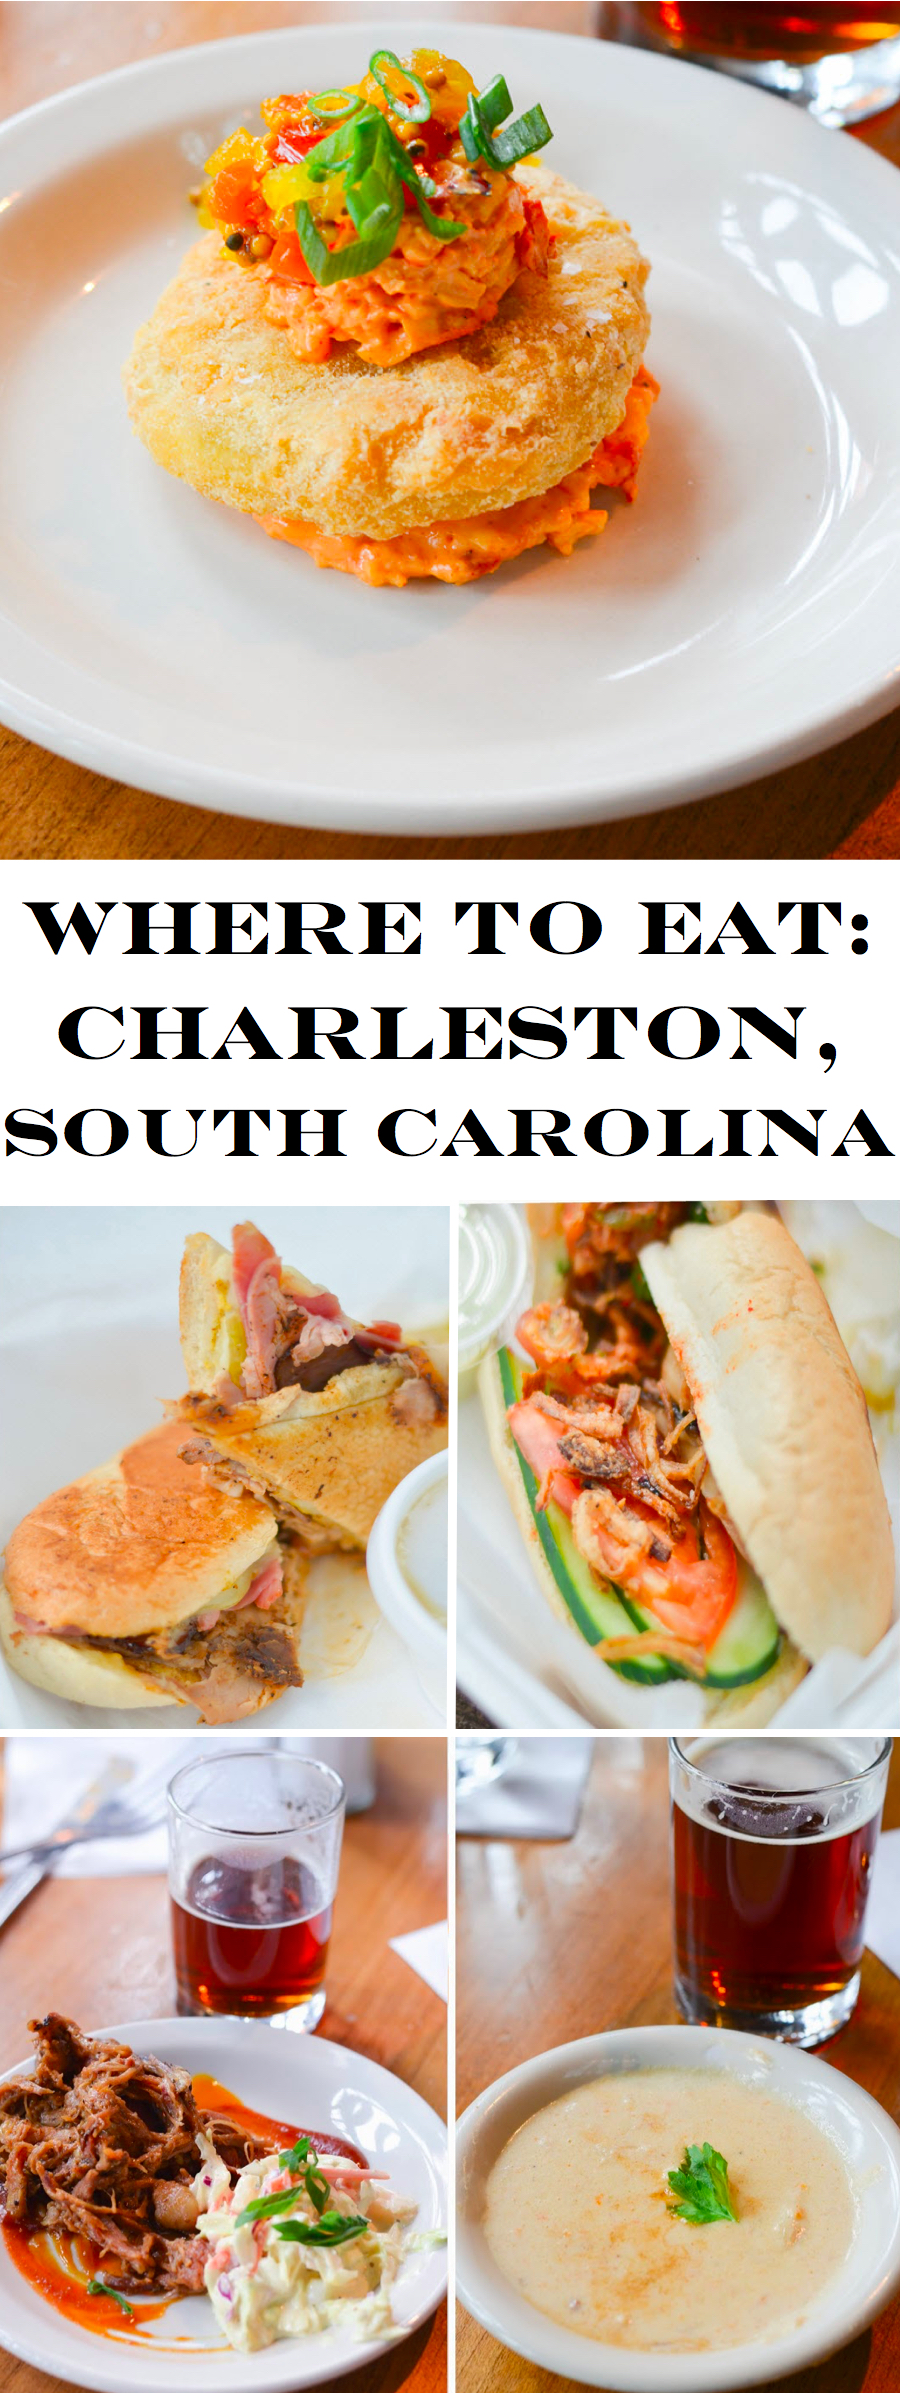 Charleston Food Travel Guide